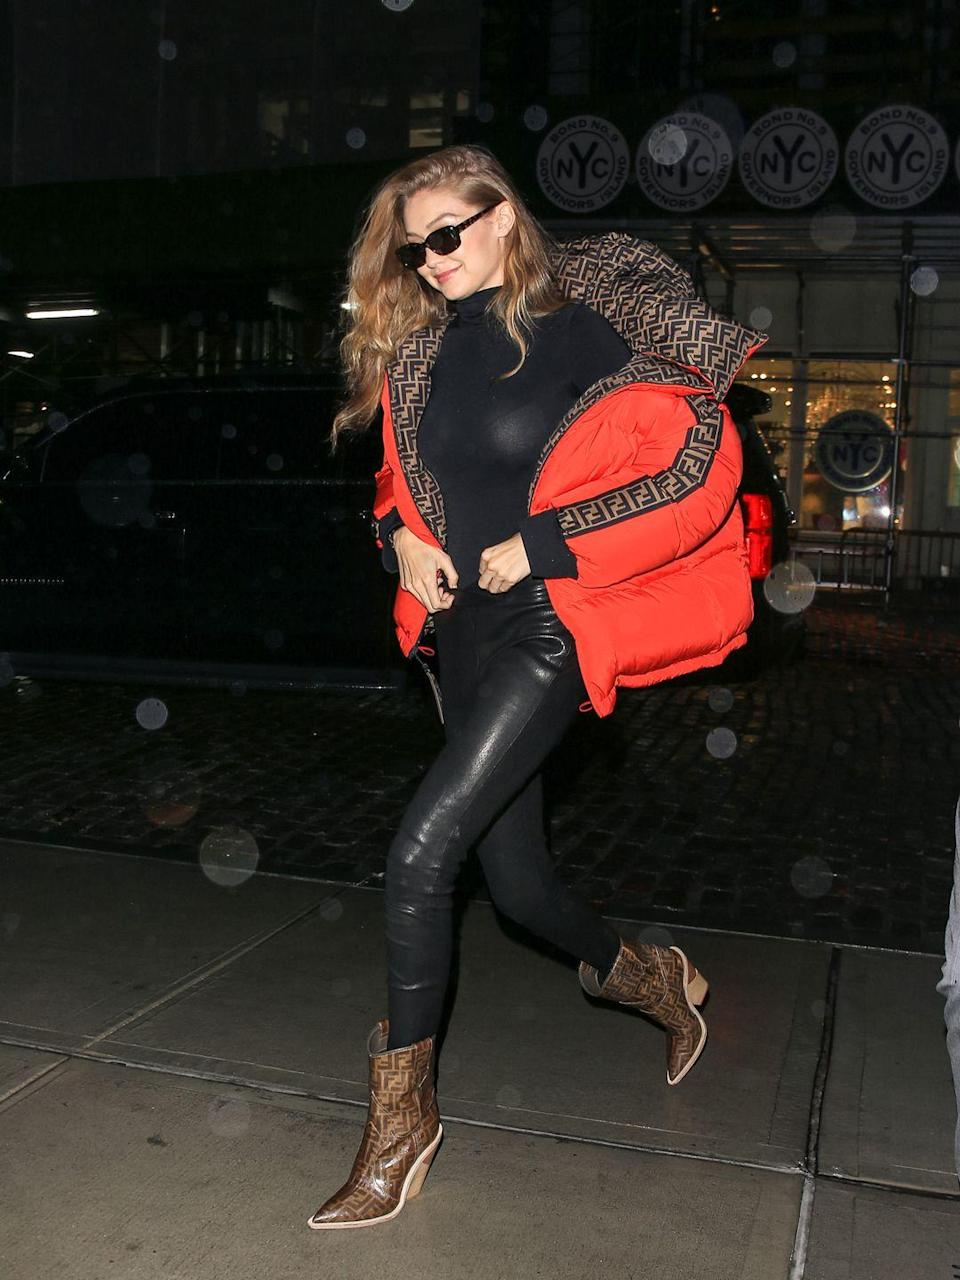 <p>If you just happen to have boots that perfectly match your winter coat, wearing them together a la Gigi Hadid is a must. Go simple with the rest of the outfit to give your statement pieces a starring role. </p>